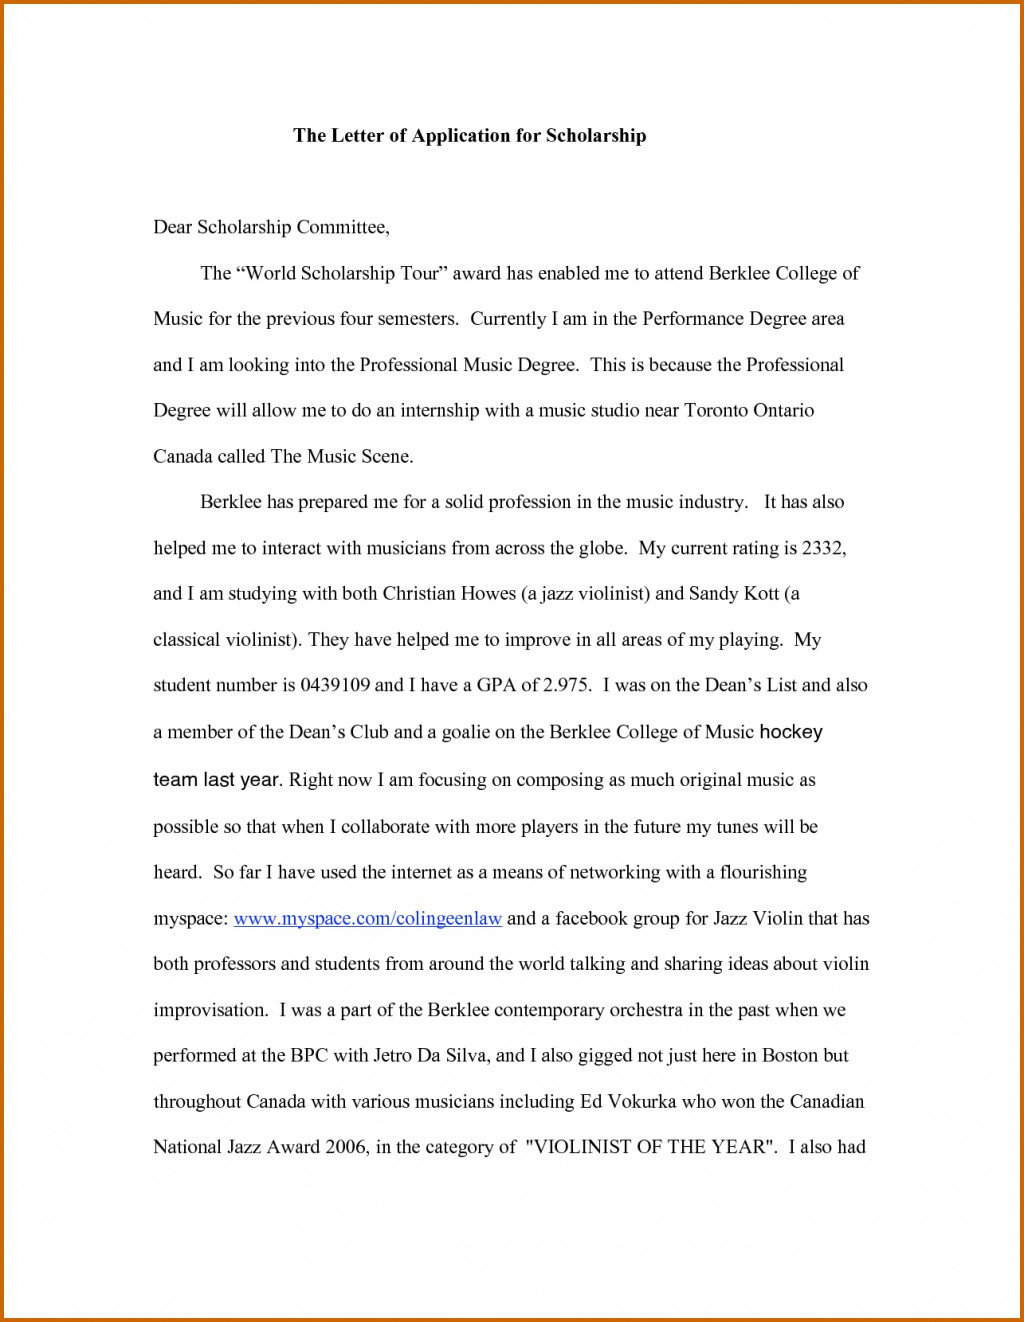 019 How To Write Essay Application For Scholarship Amazing An Interview In Apa Format Outline Template Large